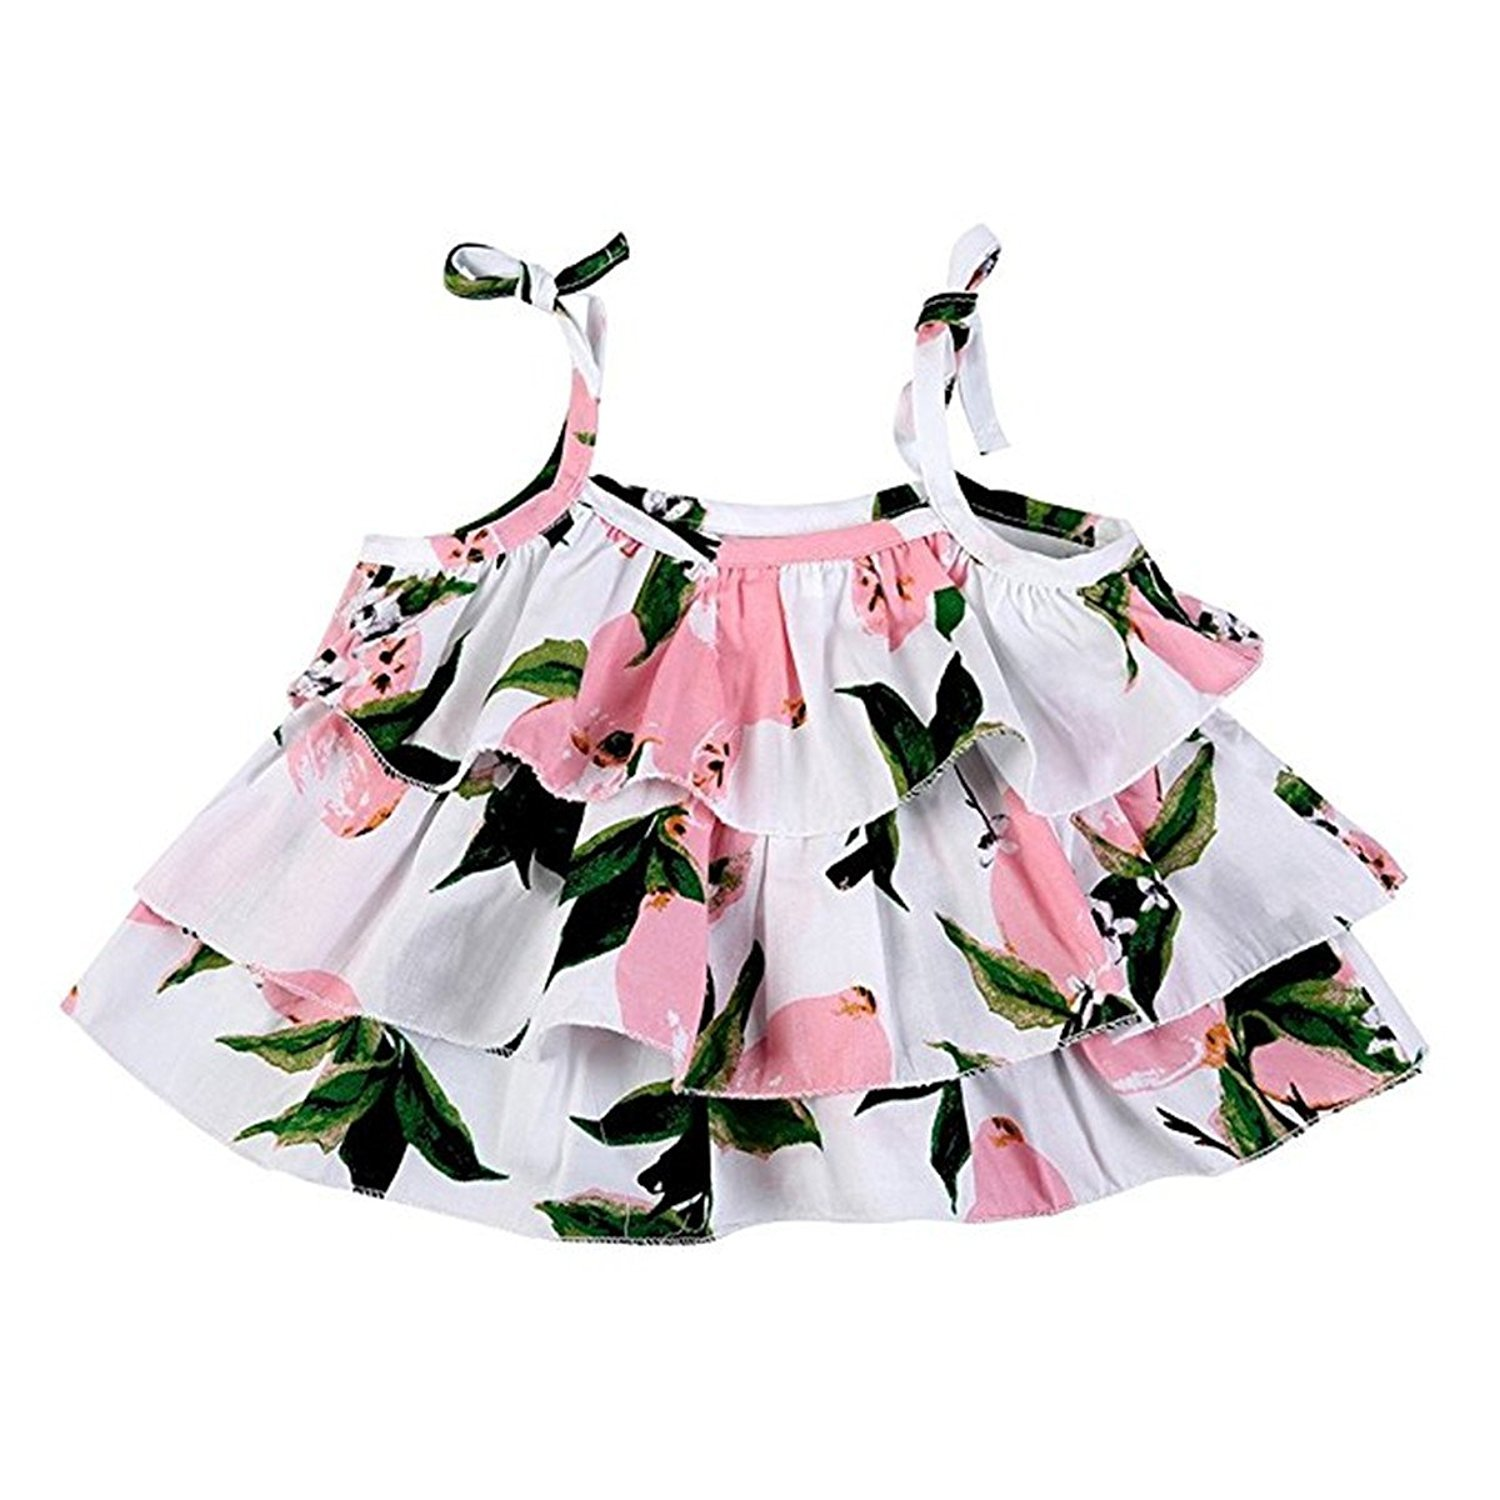 Jojobaby Little Girls 2 Pcs Floral Ruffled Vest Tops T-Shirts Shorts Outfits Set